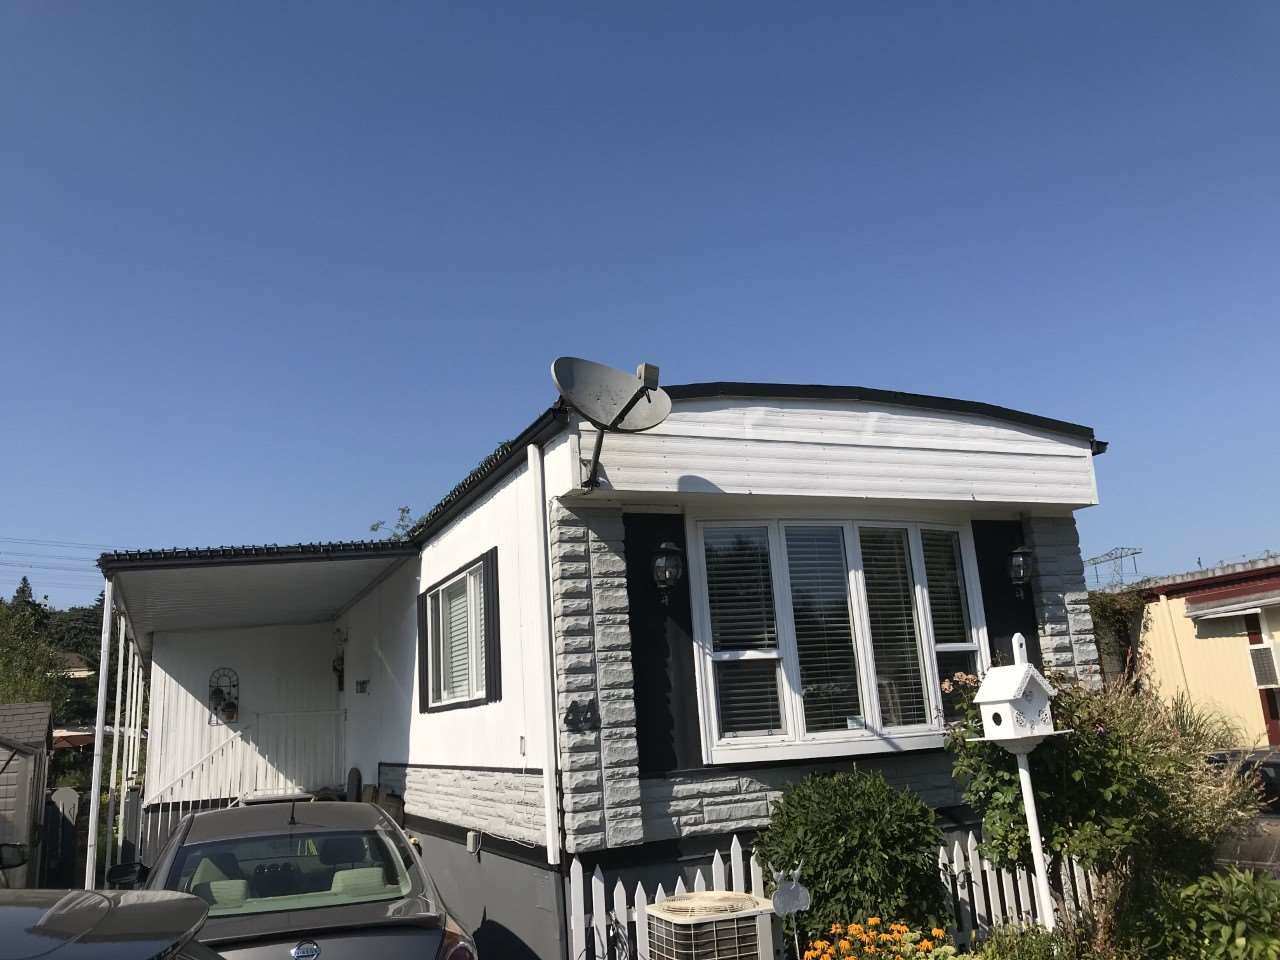 """Main Photo: 44 3300 HORN Street in Abbotsford: Central Abbotsford Manufactured Home for sale in """"Georgian Park"""" : MLS®# R2481723"""